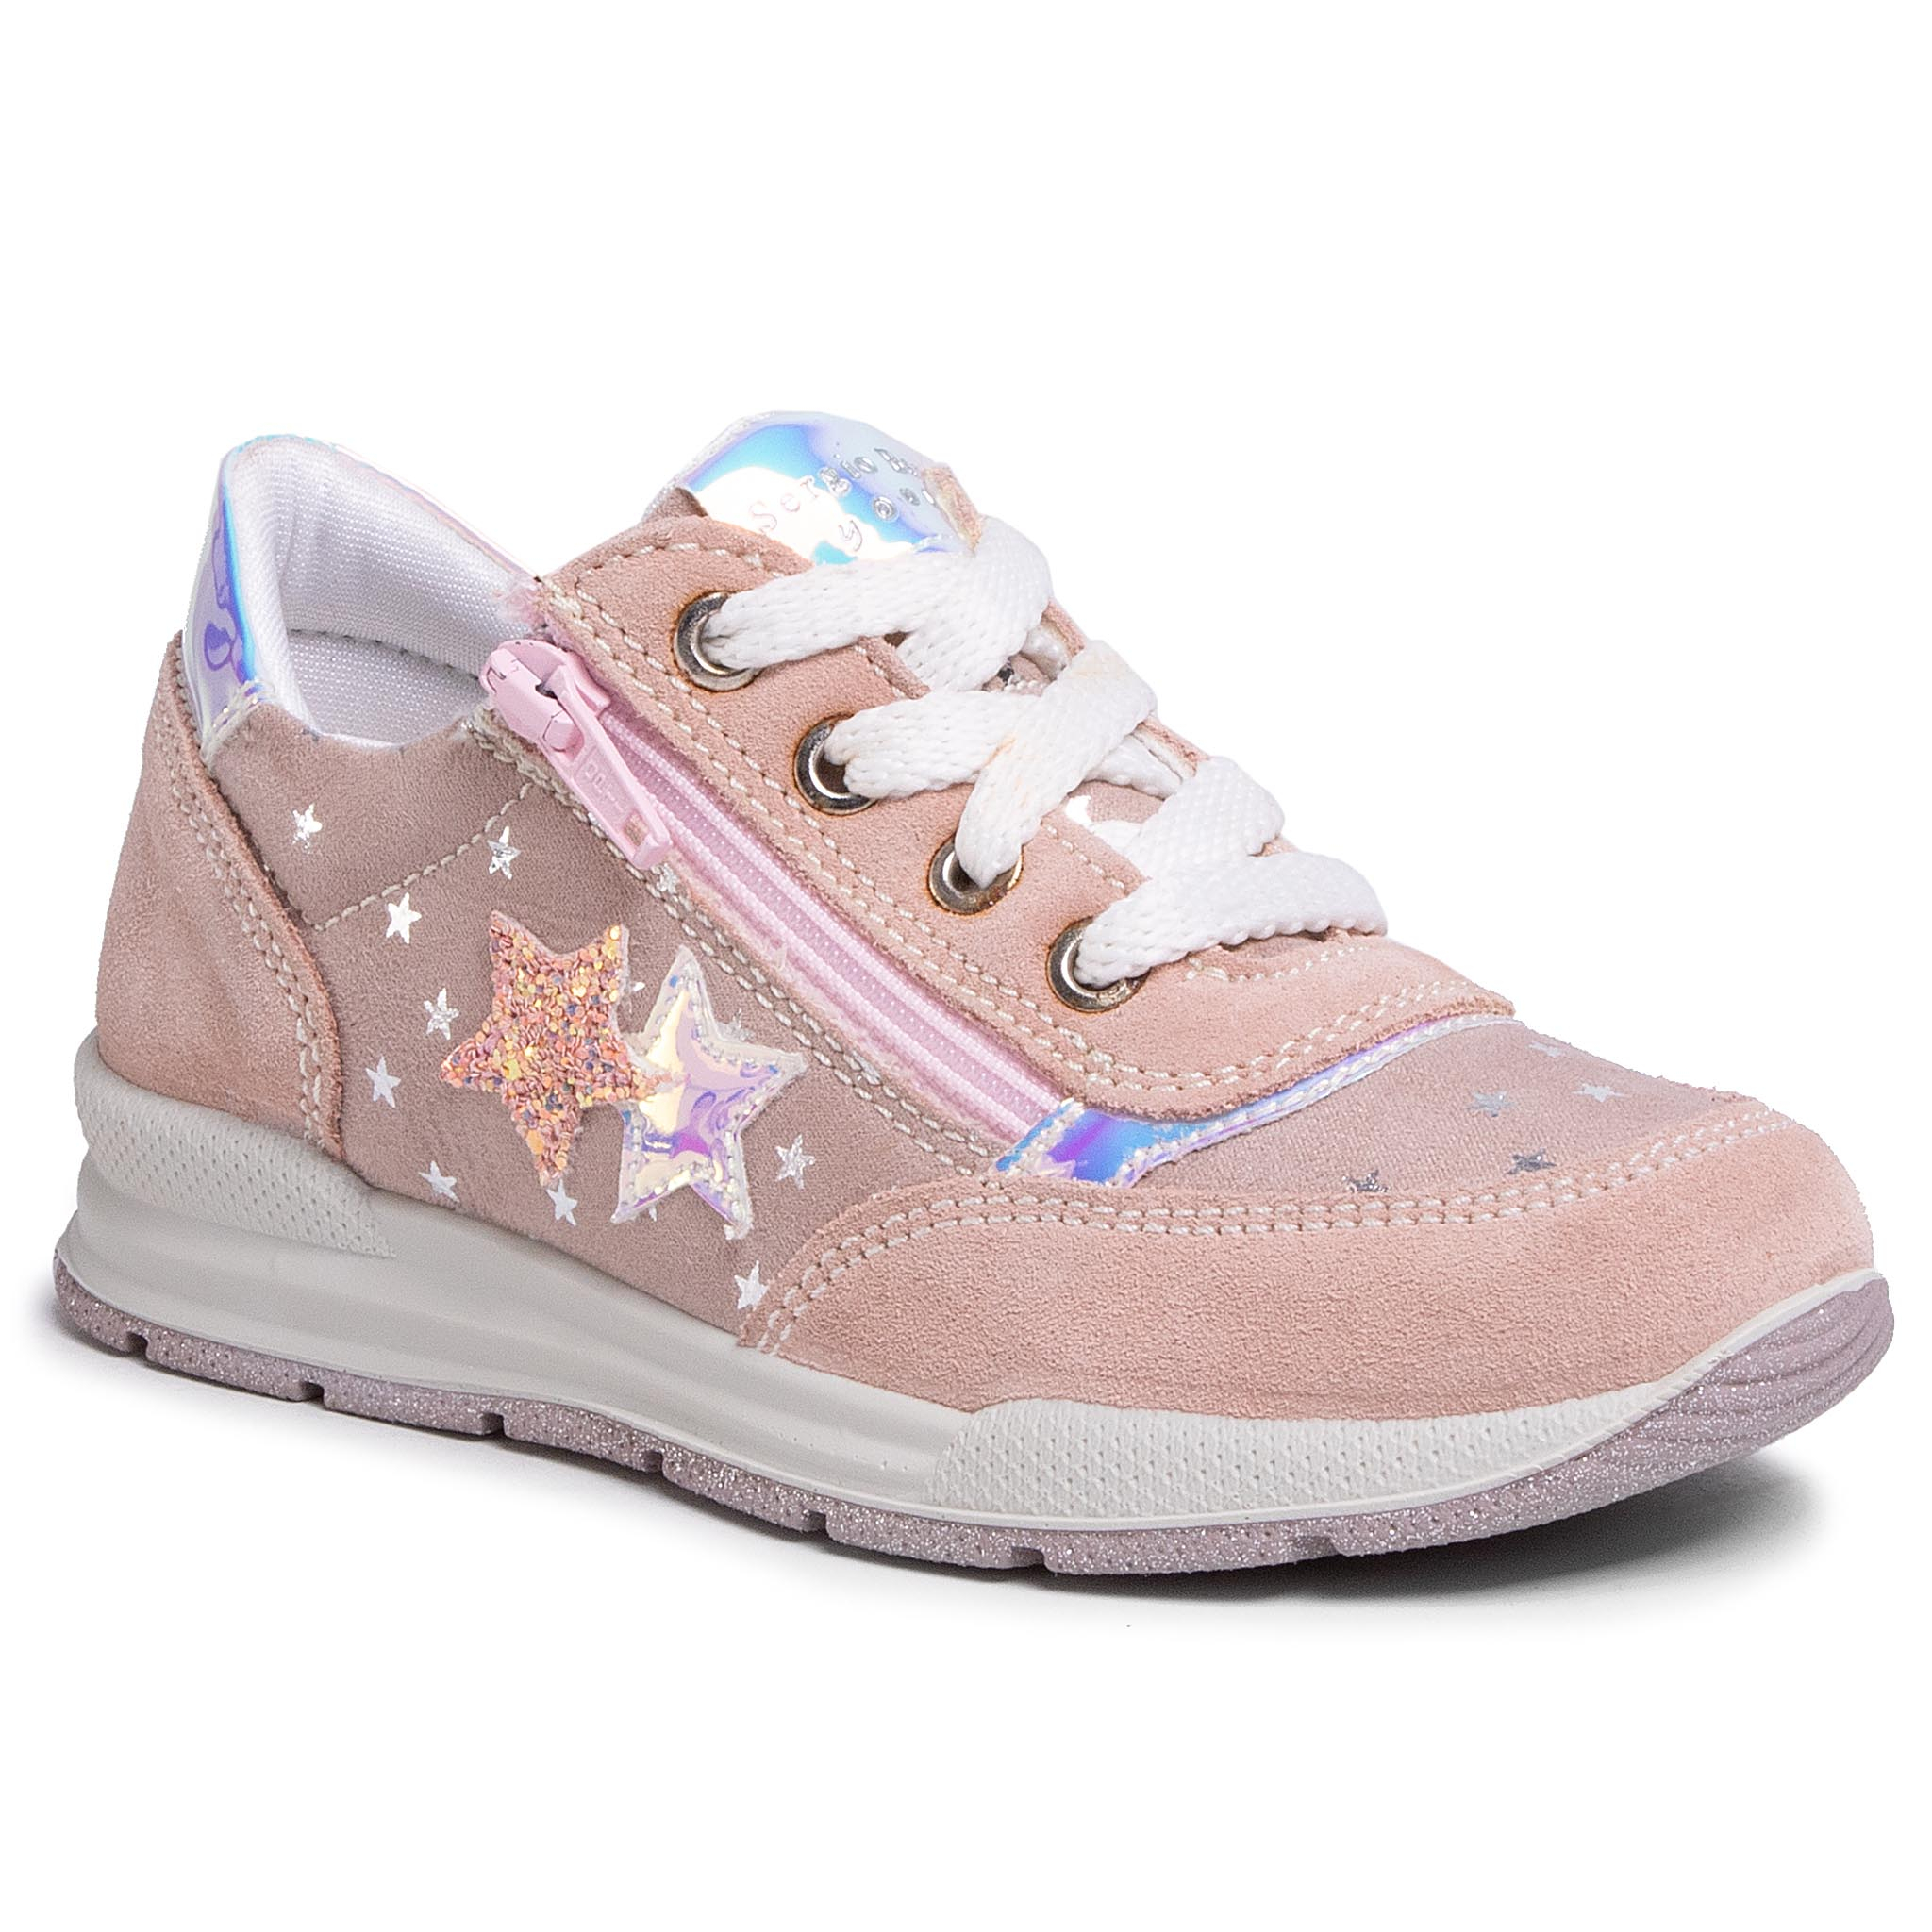 Sneakers SERGIO BARDI YOUNG - SBY-02-03-000043 621